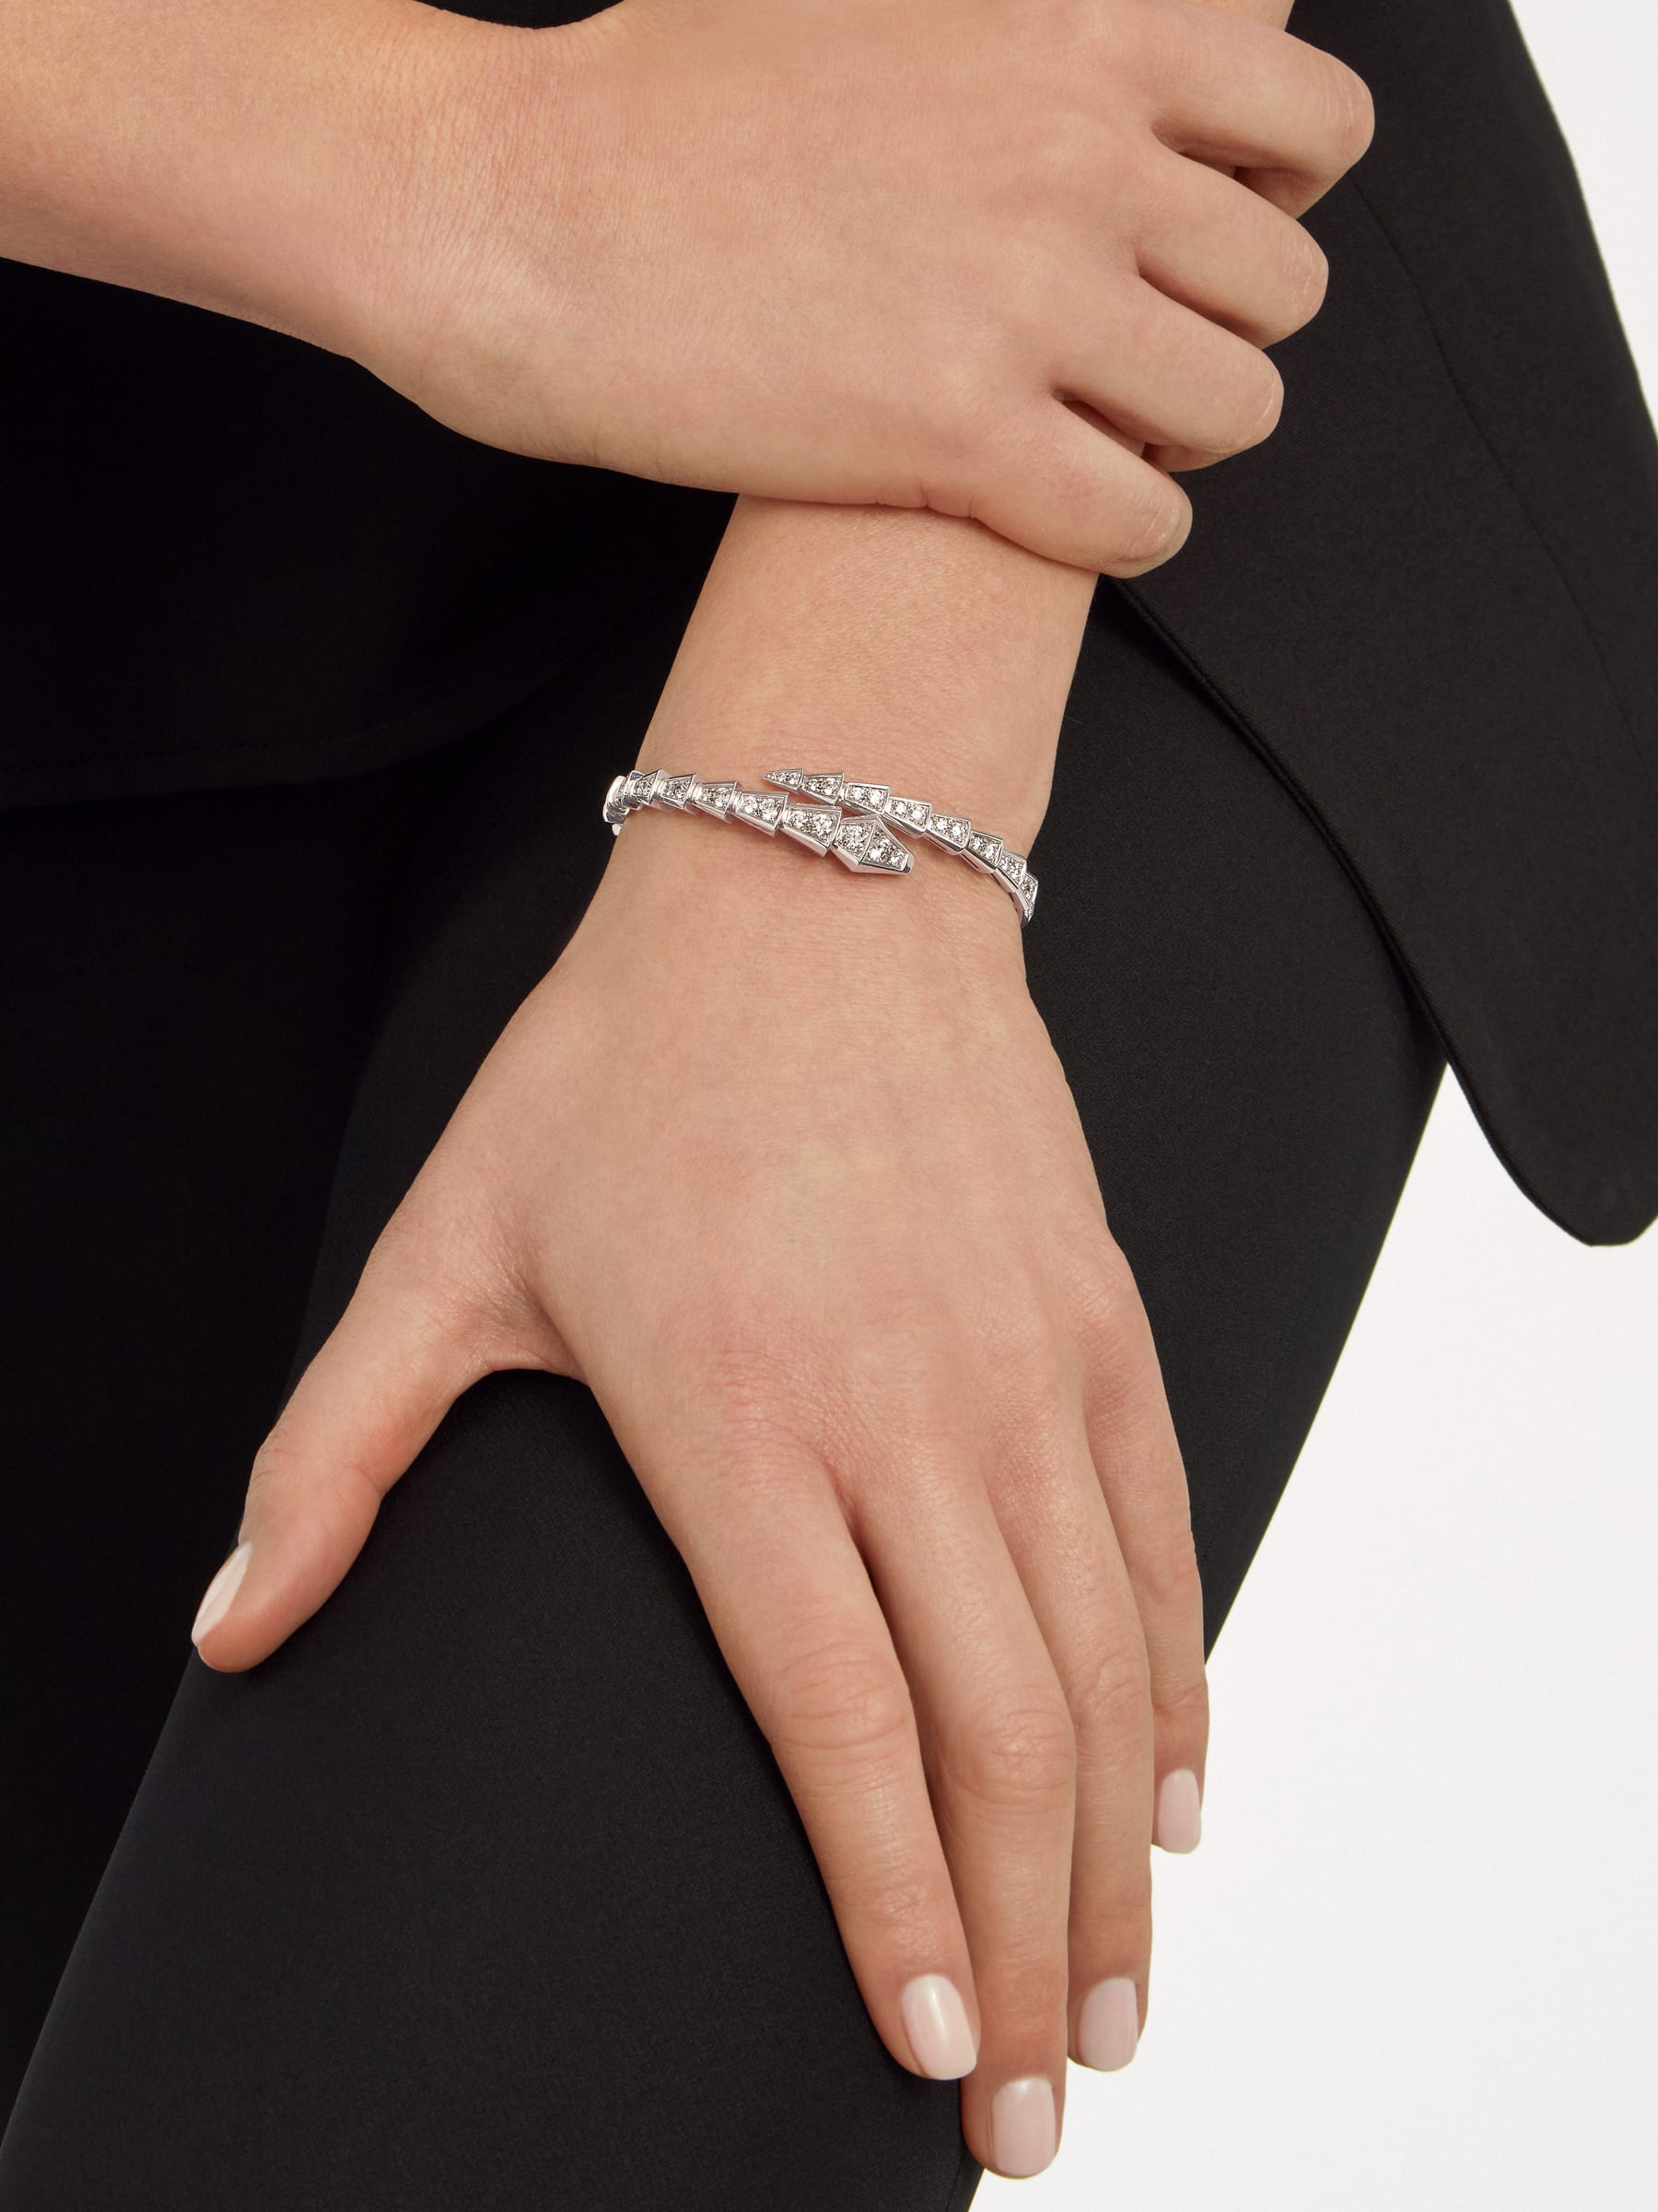 Serpenti Viper one-coil slim bracelet in 18 kt white gold, set with full pavé diamonds. BR857492 image 3